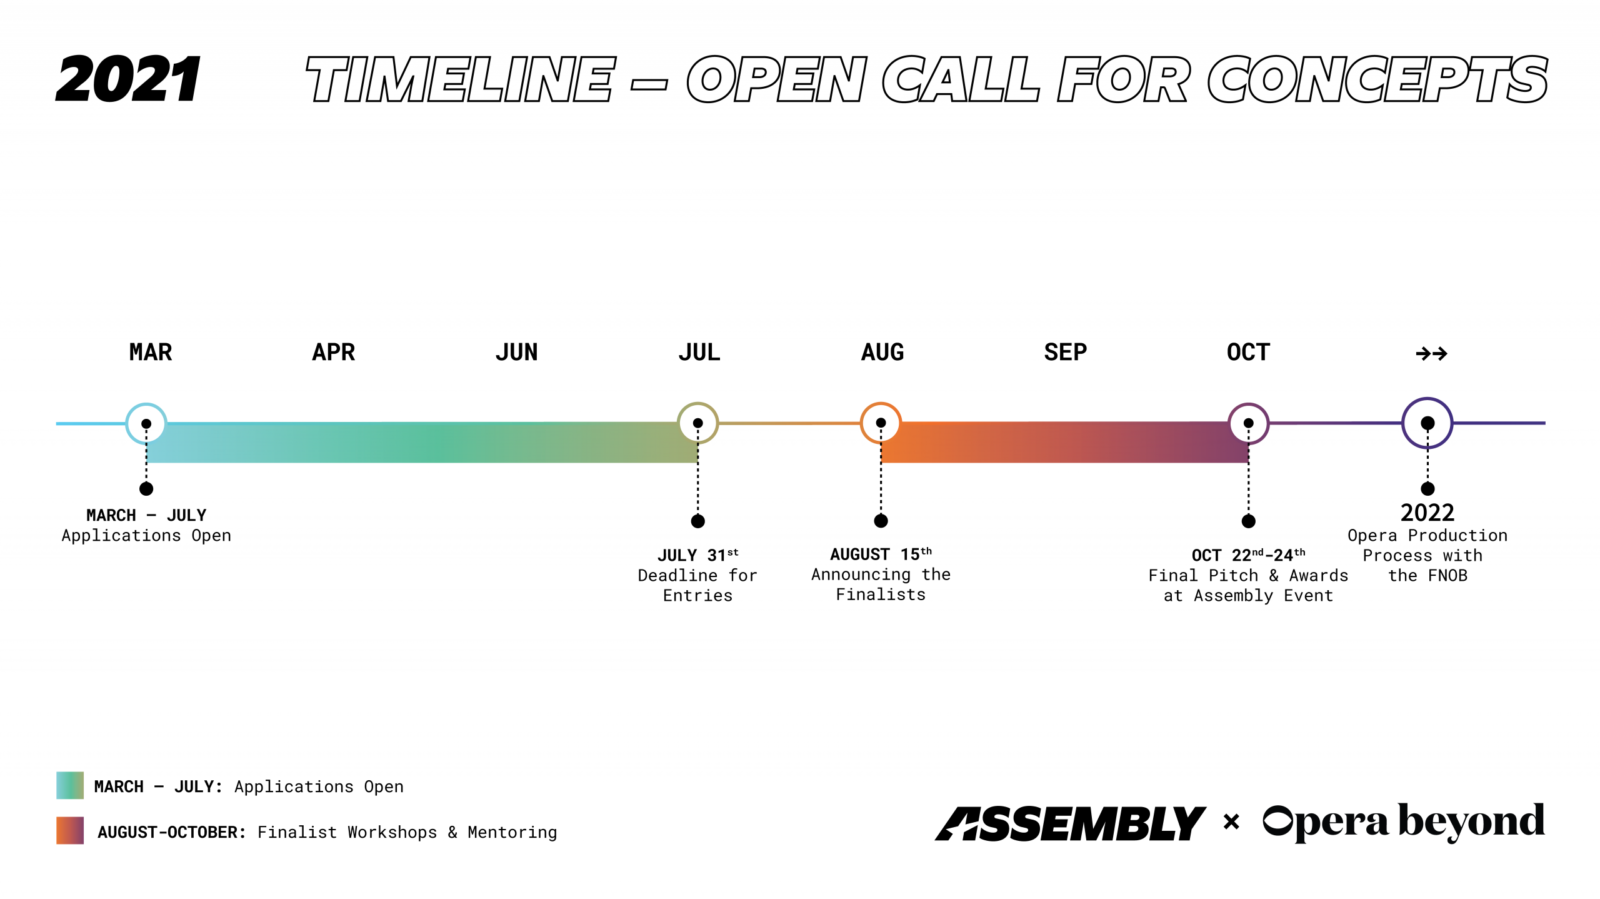 Timeline for competition: July 31st deadline for entries. August 15th: announcing the finalists. Oct 22nd-24th: Final pitch & awards at Assembly event. 2022: Opera production process with the FNOB.